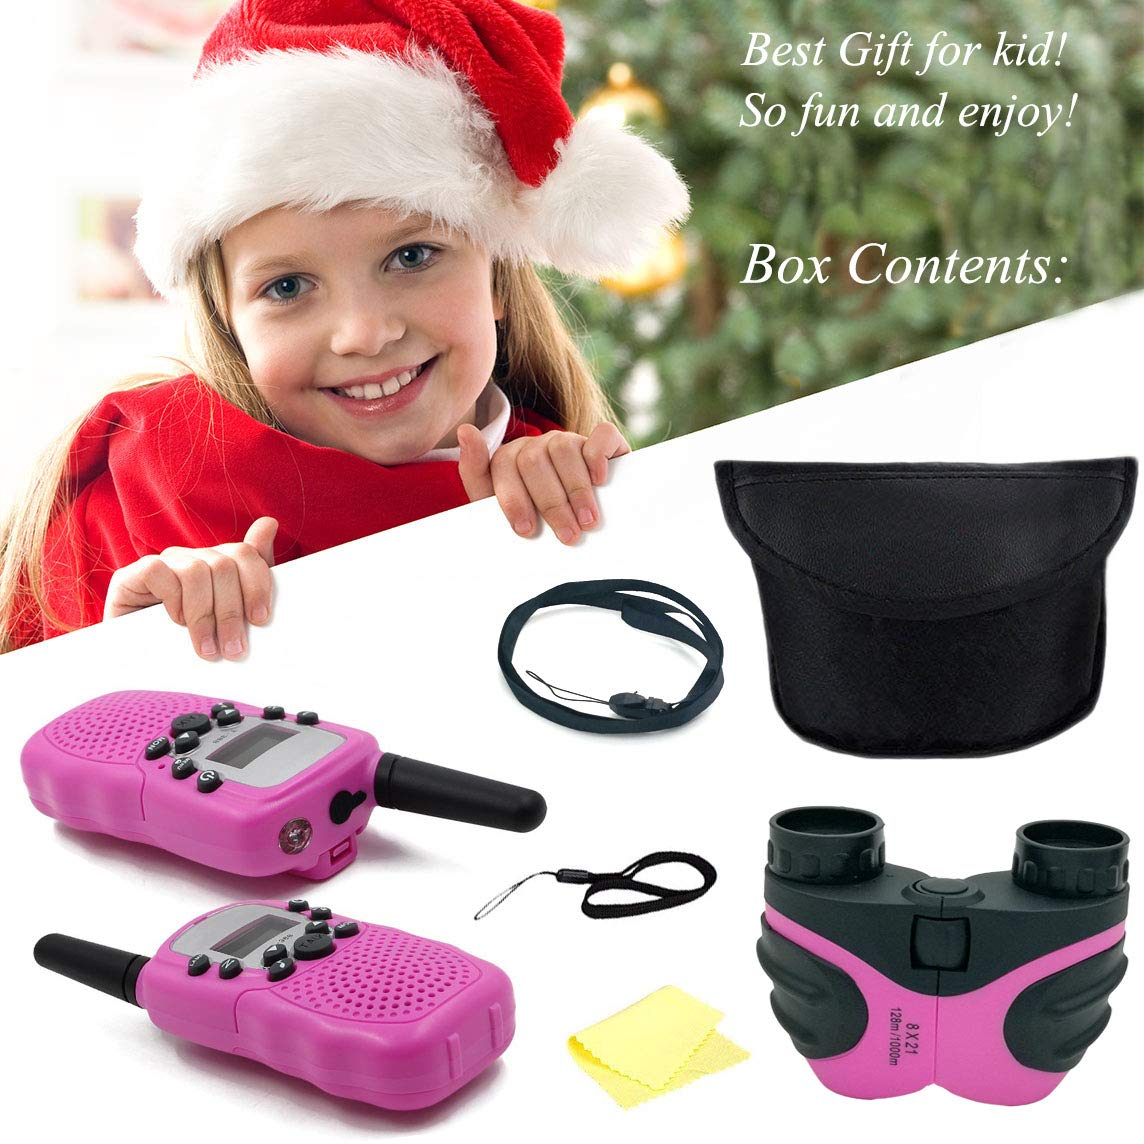 YYhappy childhood Outdoor Toys for 3-12 Year Old Boys, Walkie Talkies for Kids Toys for 3-12 Year Old Girls,Kids Binoulars for 4-9 Year Old Girl Birthday Gift ,1 Set(Pink) by YYhappy childhood (Image #5)